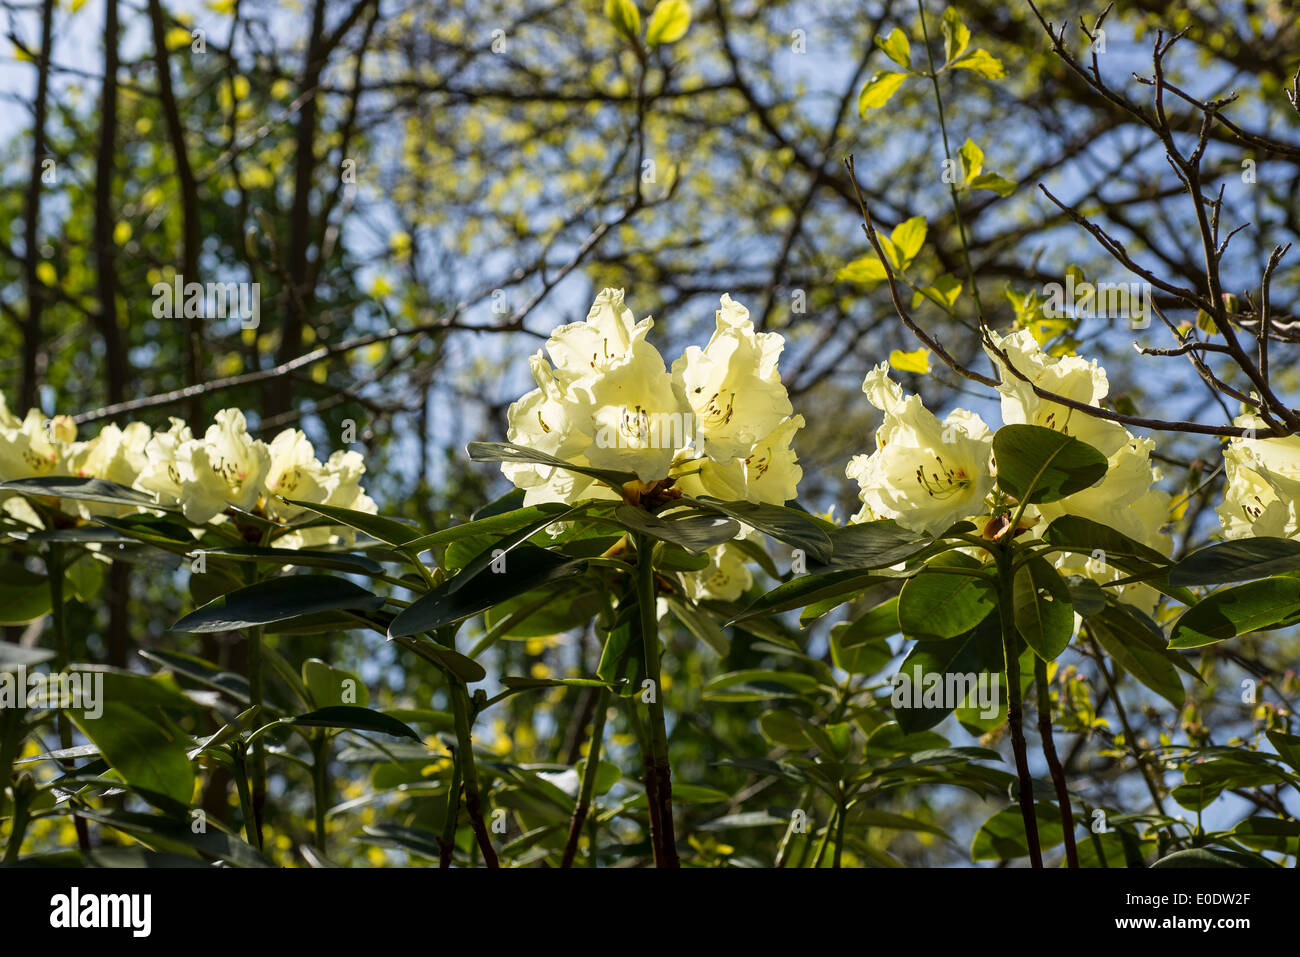 Rhododendron 'Beatrice Keir' - Stock Image